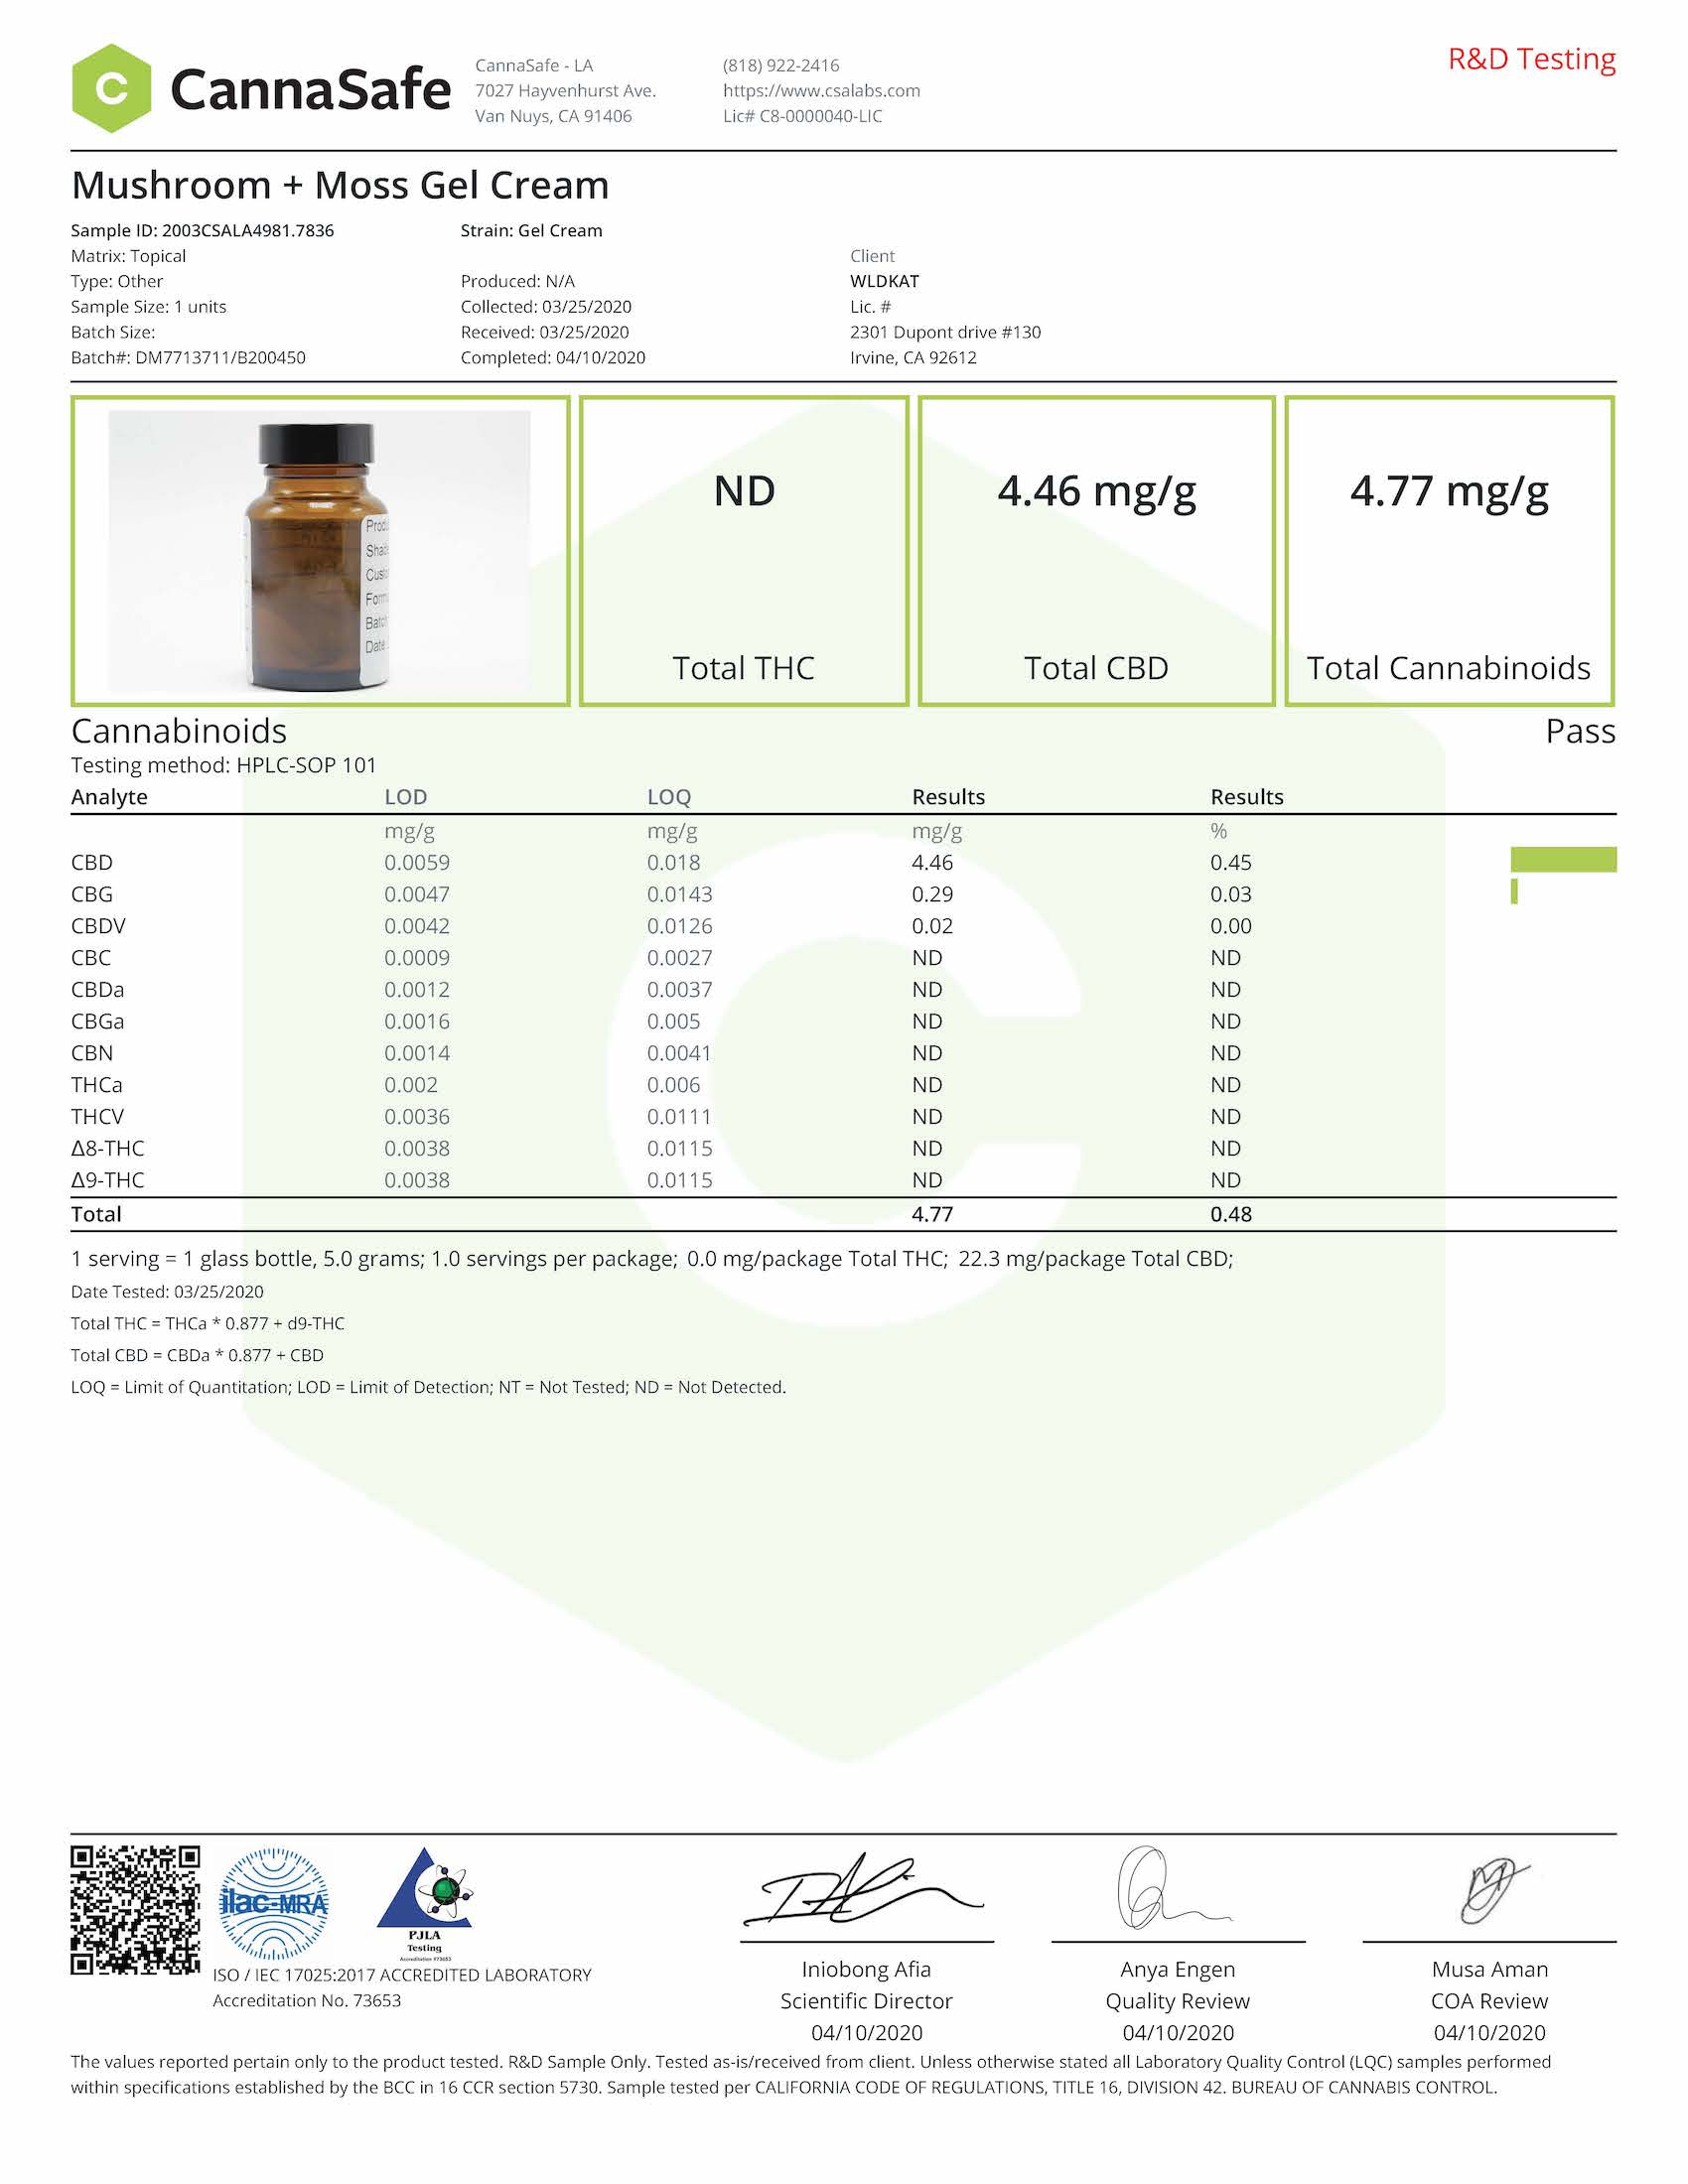 Mushroom + Moss Gel Cream Certificate of Analysis